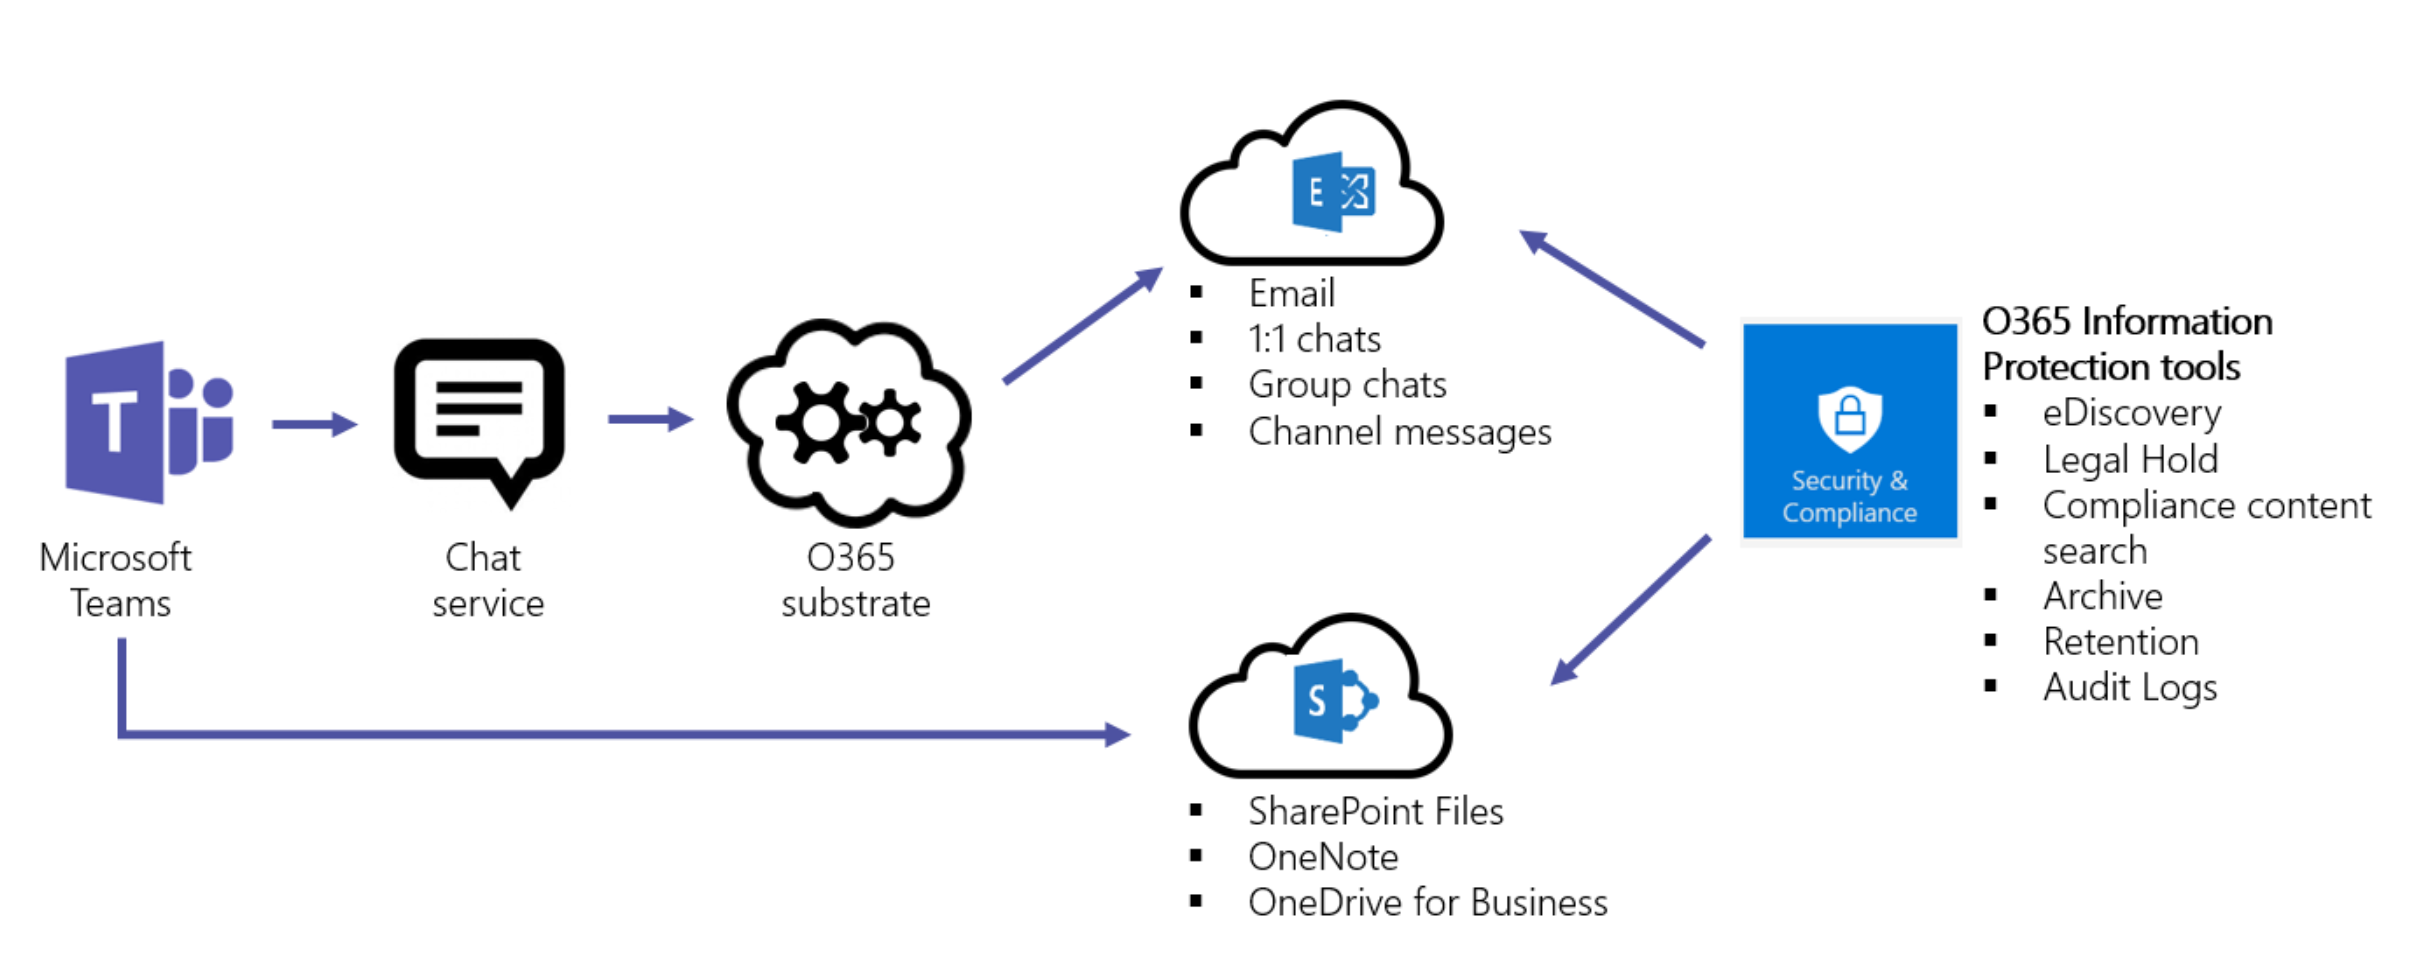 overview_of_security_and_compliance_in_microsoft_teams_image1-2